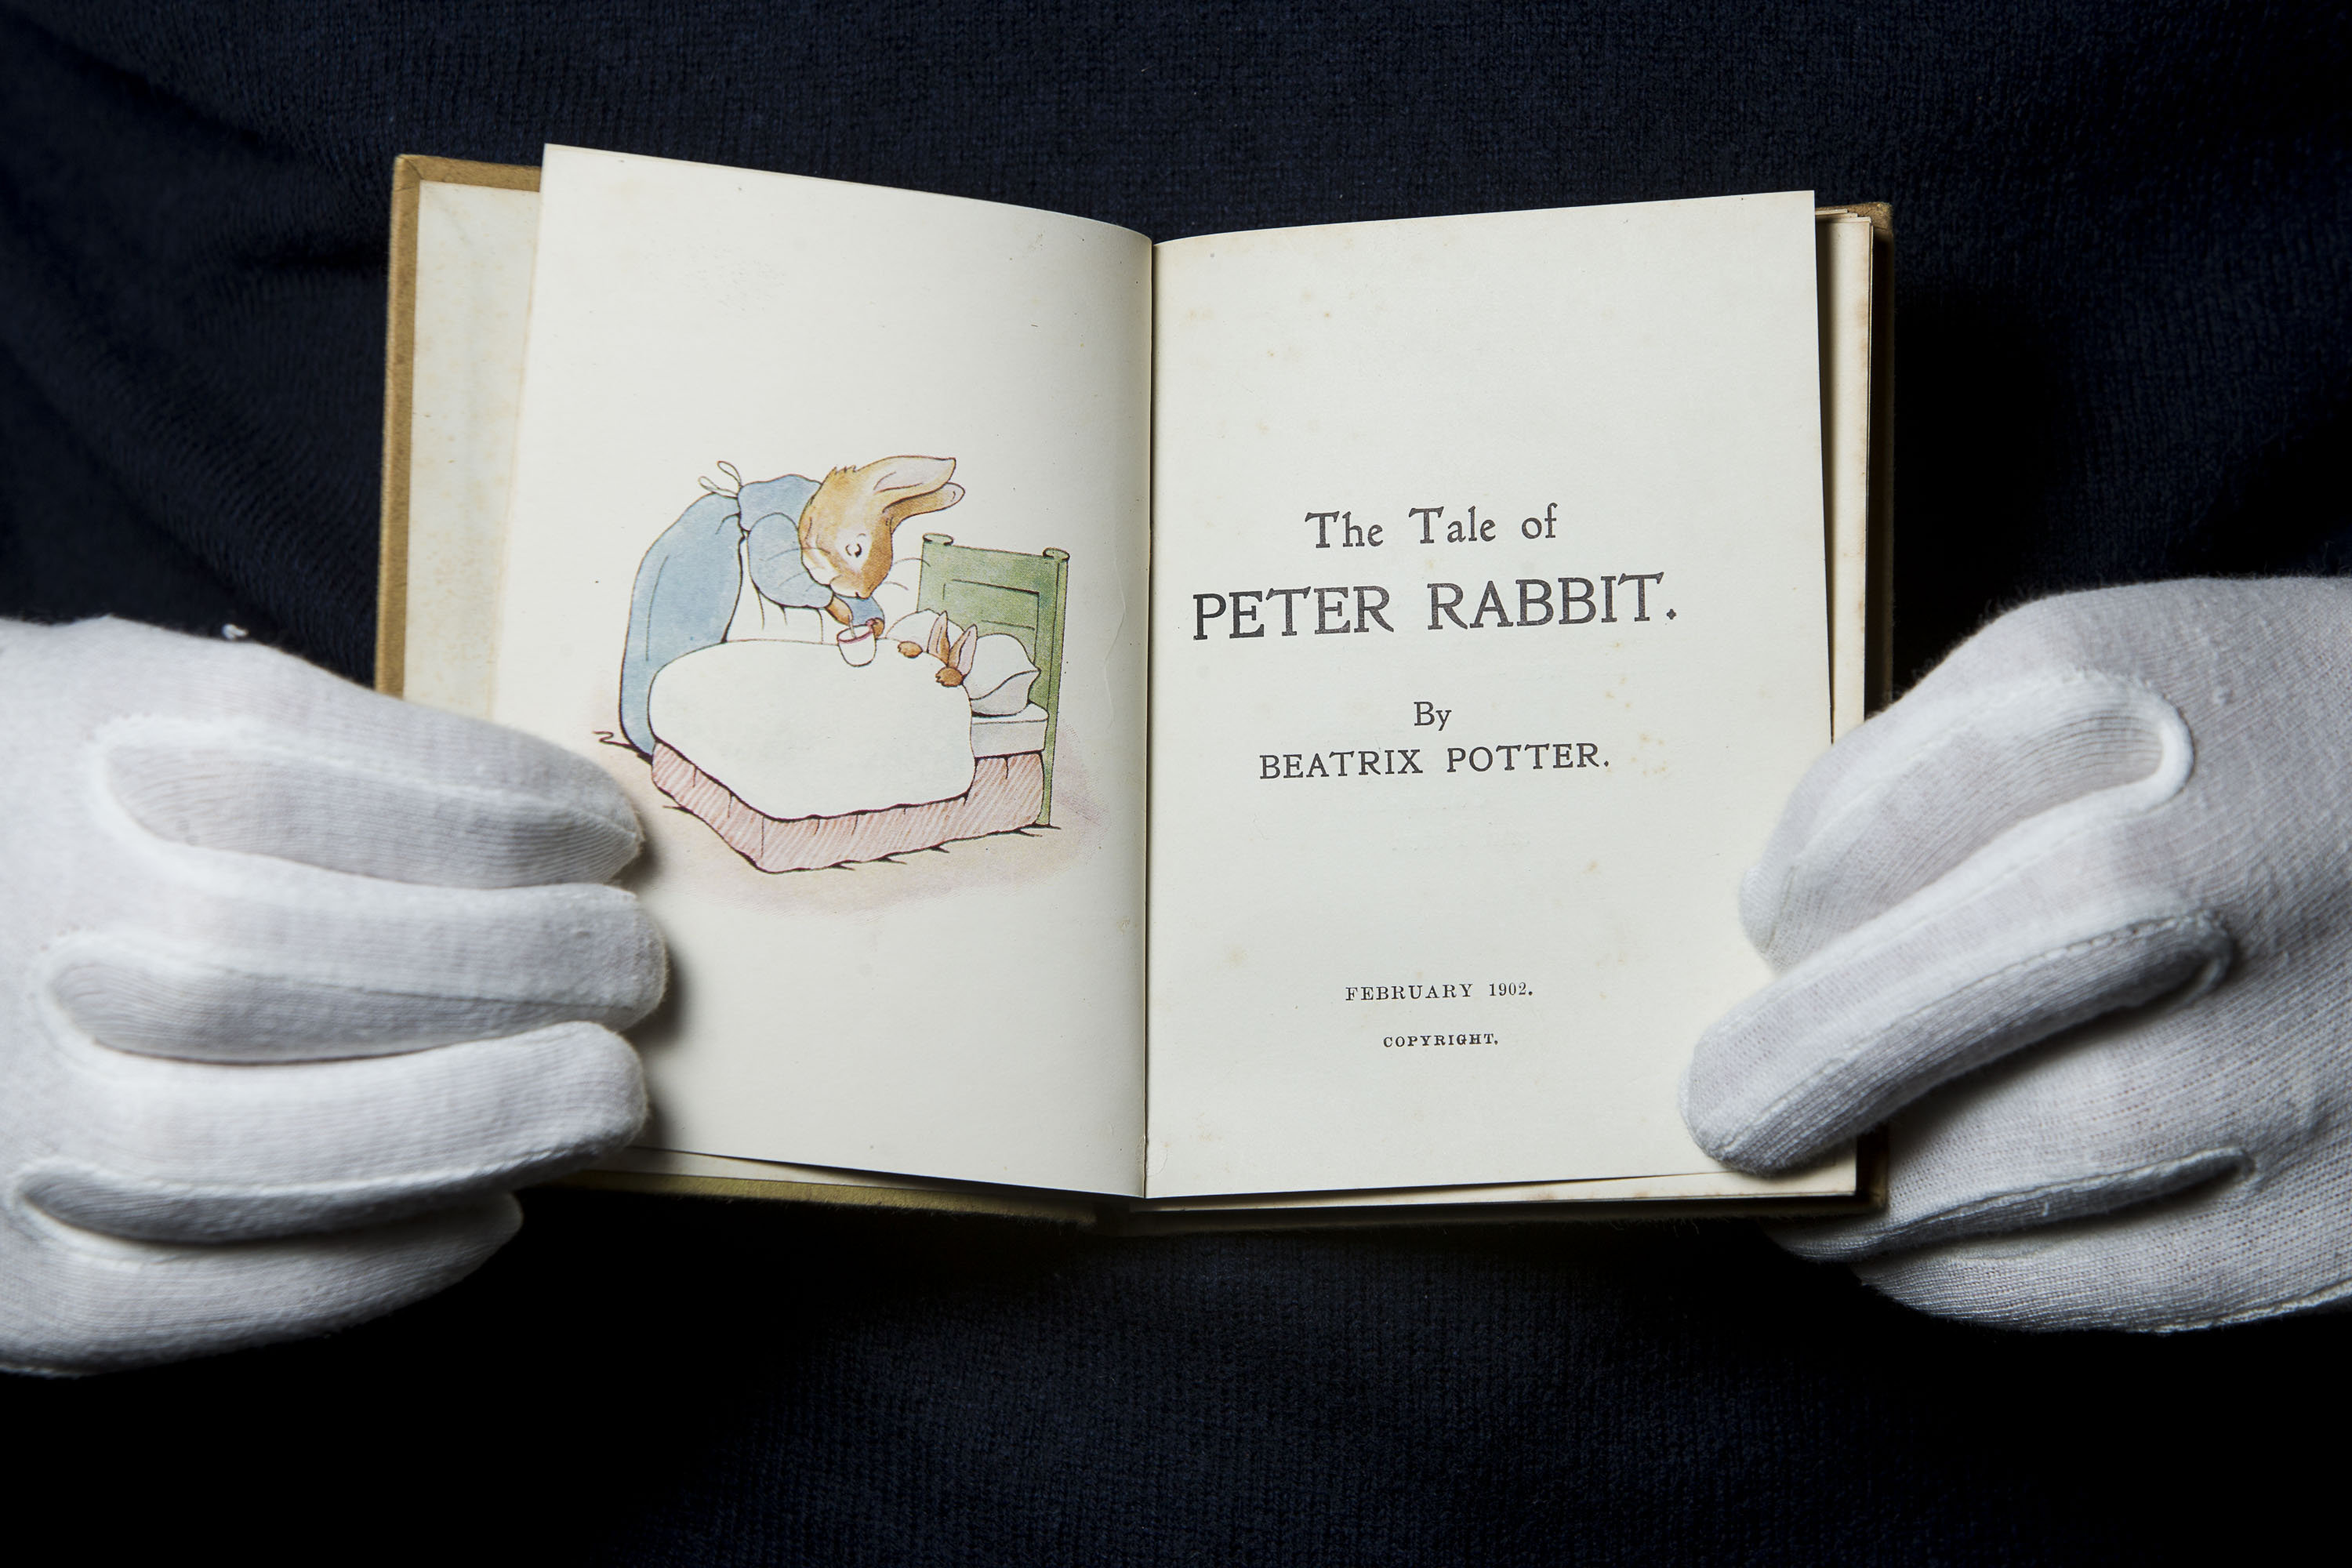 First edition of beatrix potter's the tale of peter rabbit to go.